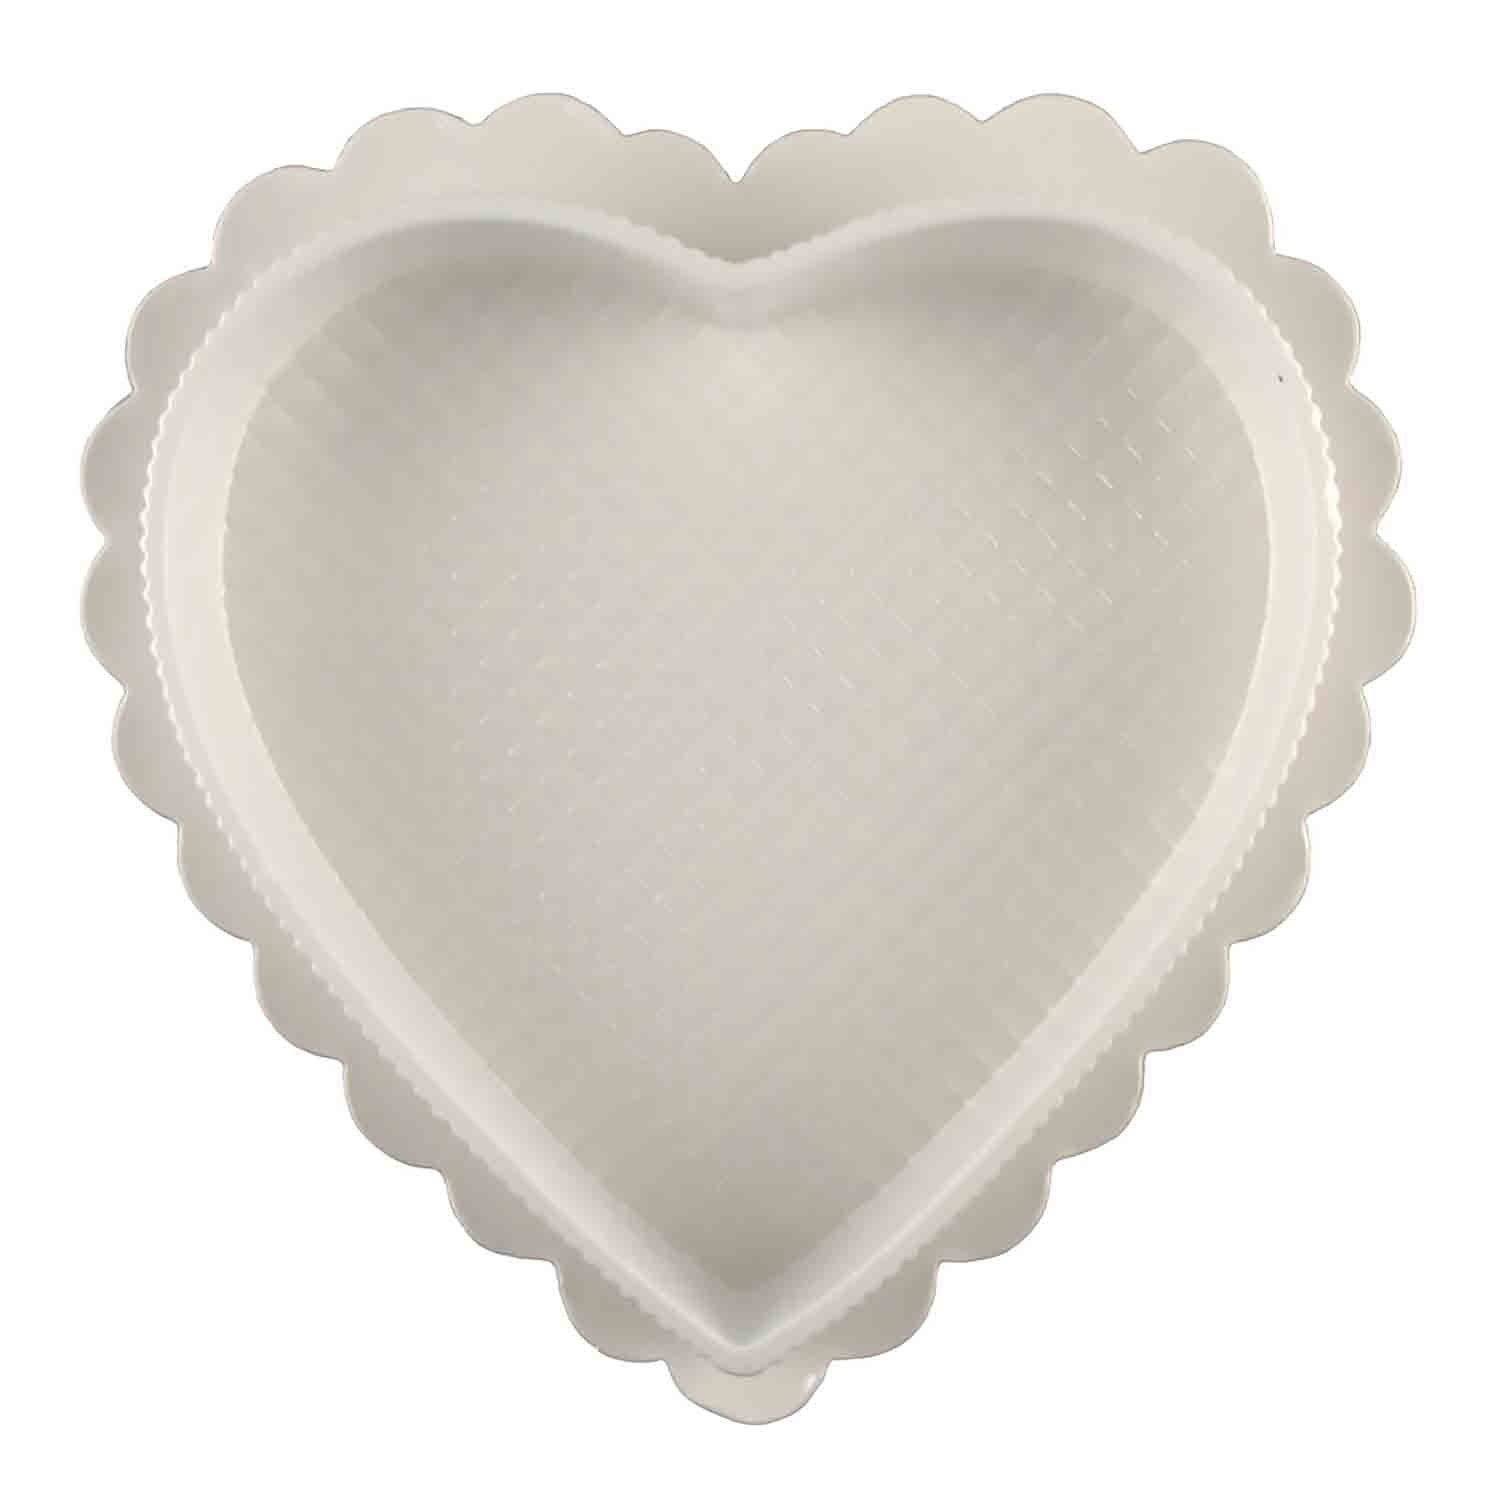 1 lb. White Heart Candy Box with Clear Lid